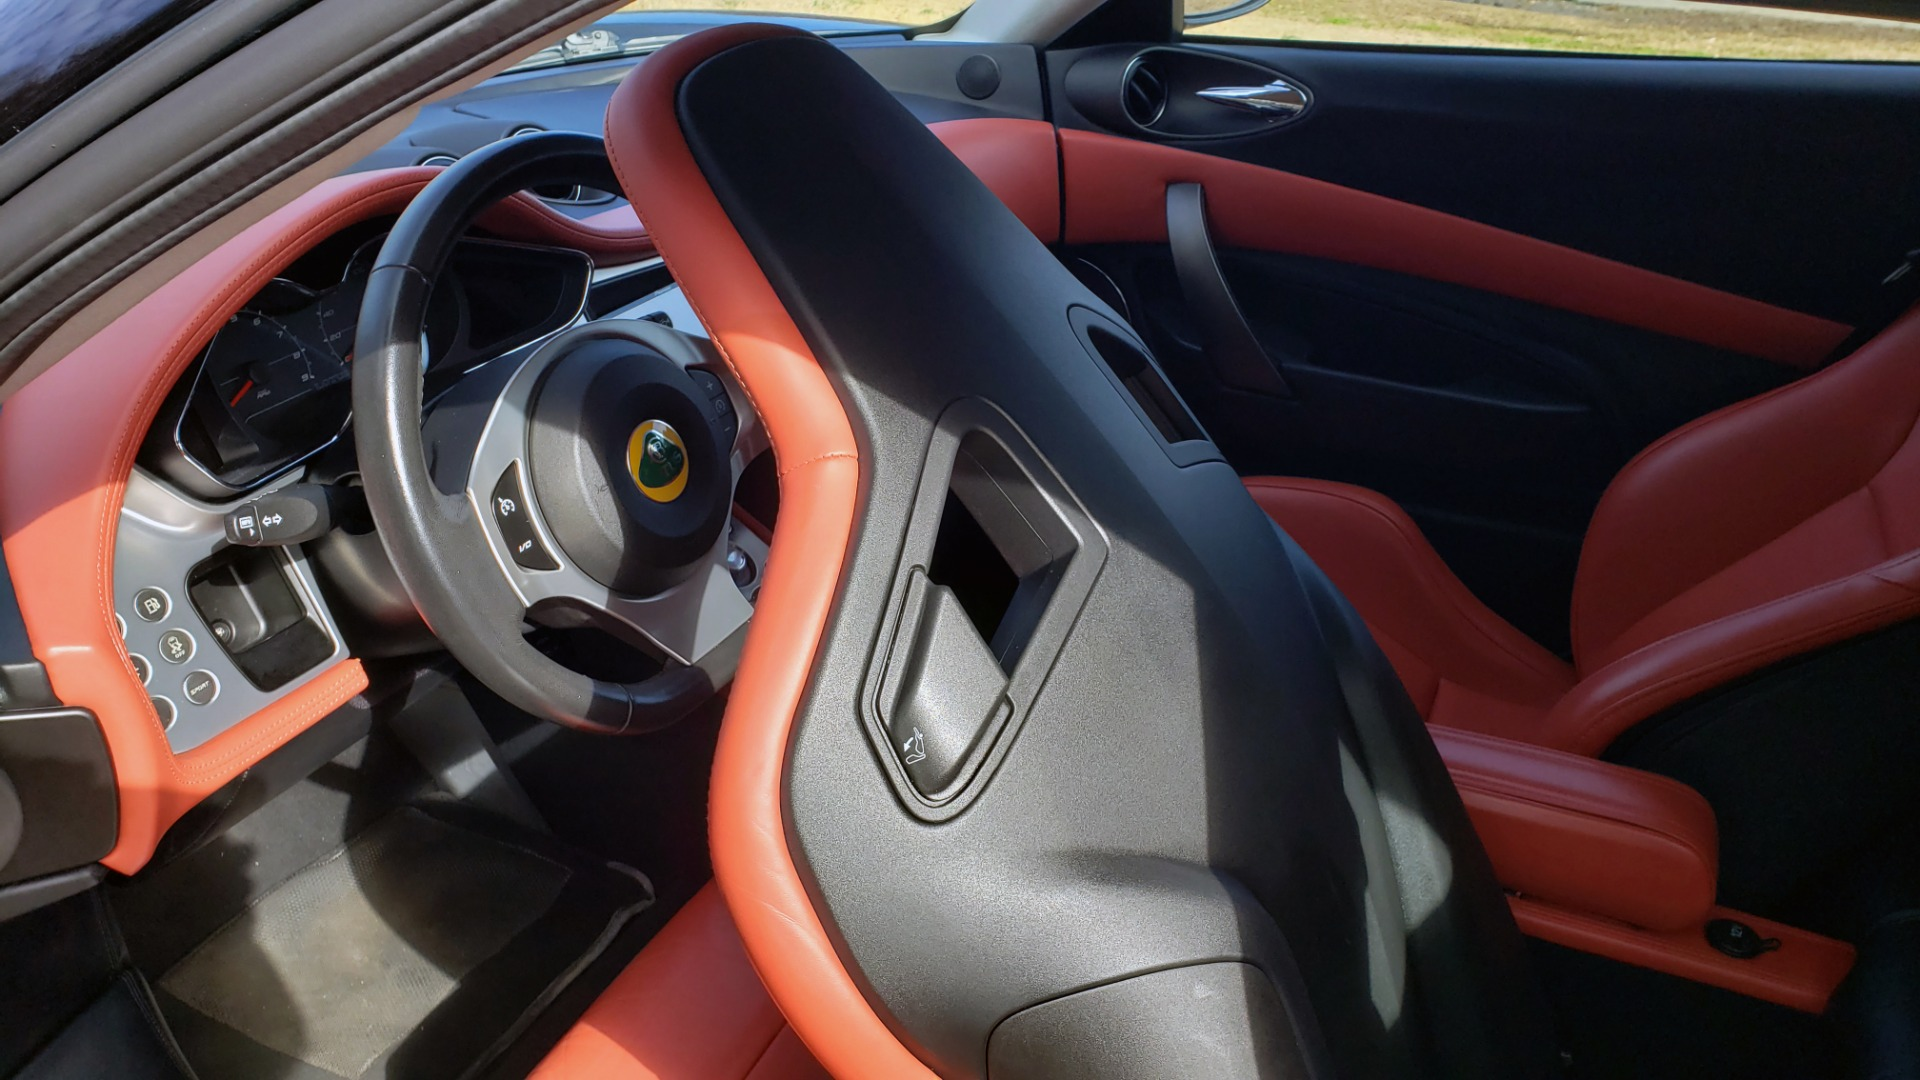 Used 2011 Lotus EVORA S 2+2 / 3.5L V6 / 6-SPD MANUAL / PIONEER / REARVIEW / LOW MILES for sale Sold at Formula Imports in Charlotte NC 28227 31